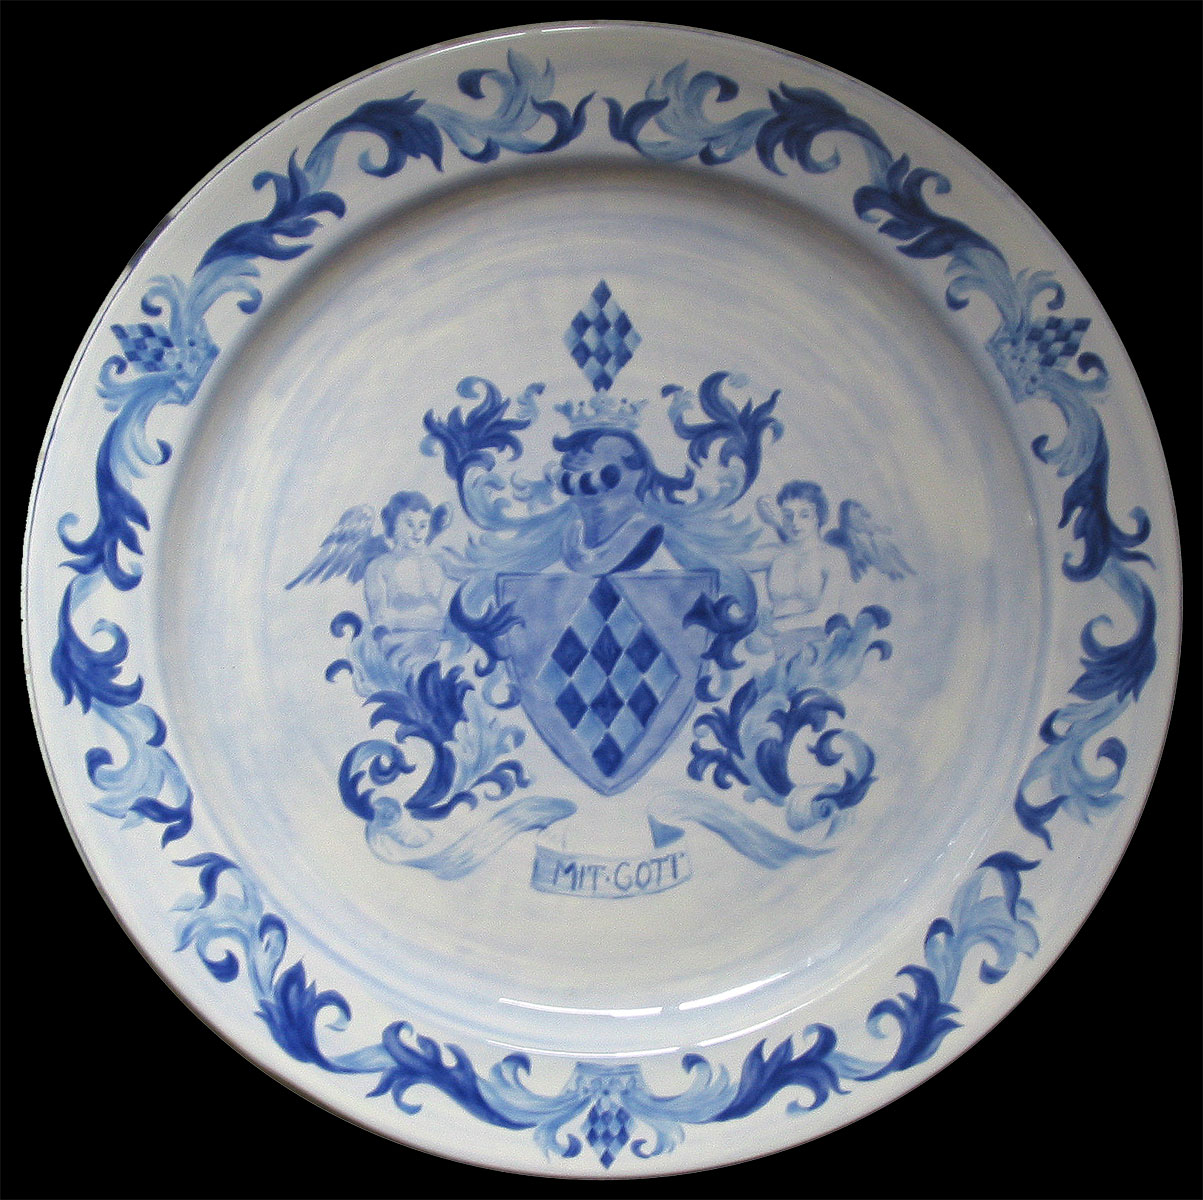 Plate with Crest